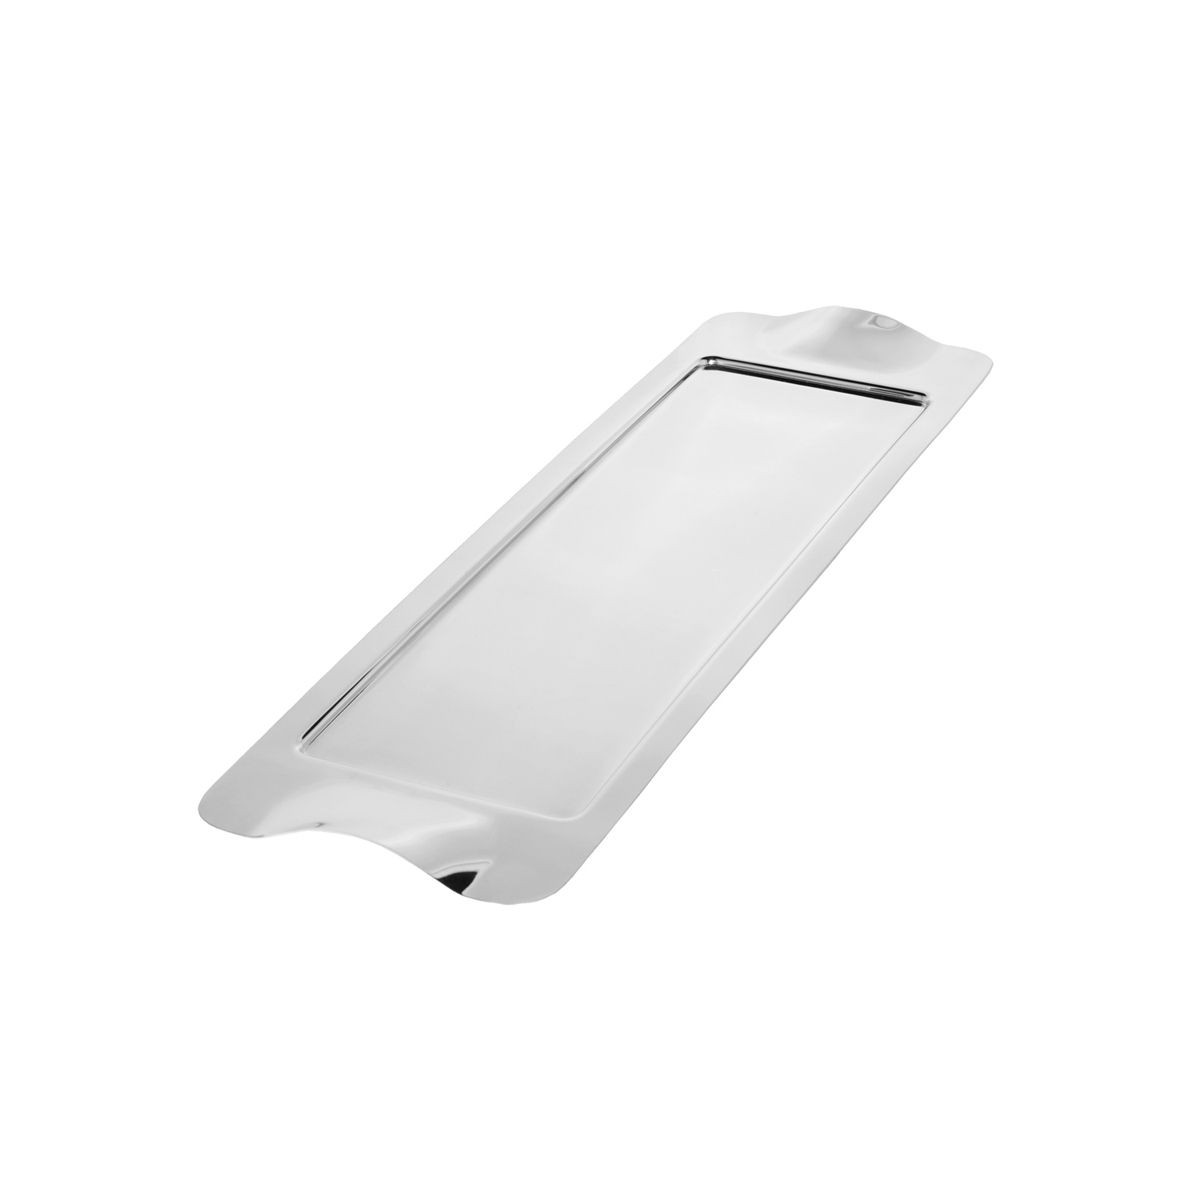 "Service Ideas SM-41 SteelForme Stainless Steel Rectangle Tray, 20"" x 6"""